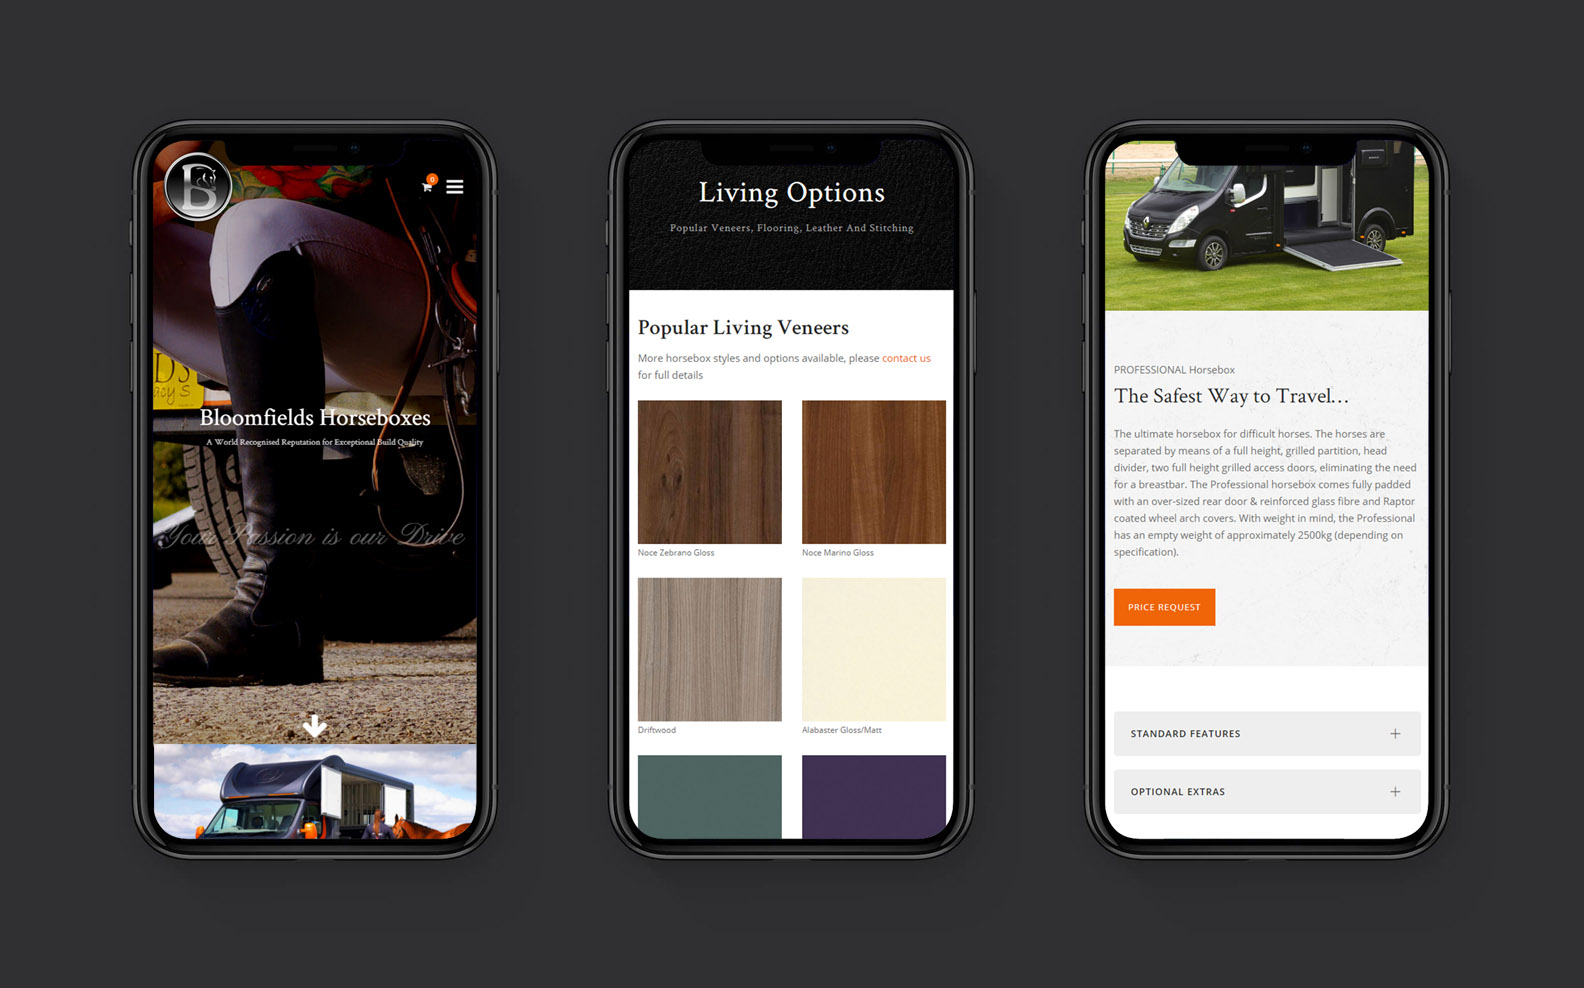 Responsive Web Design for Bloomfields Horseboxes - iPhone Screens